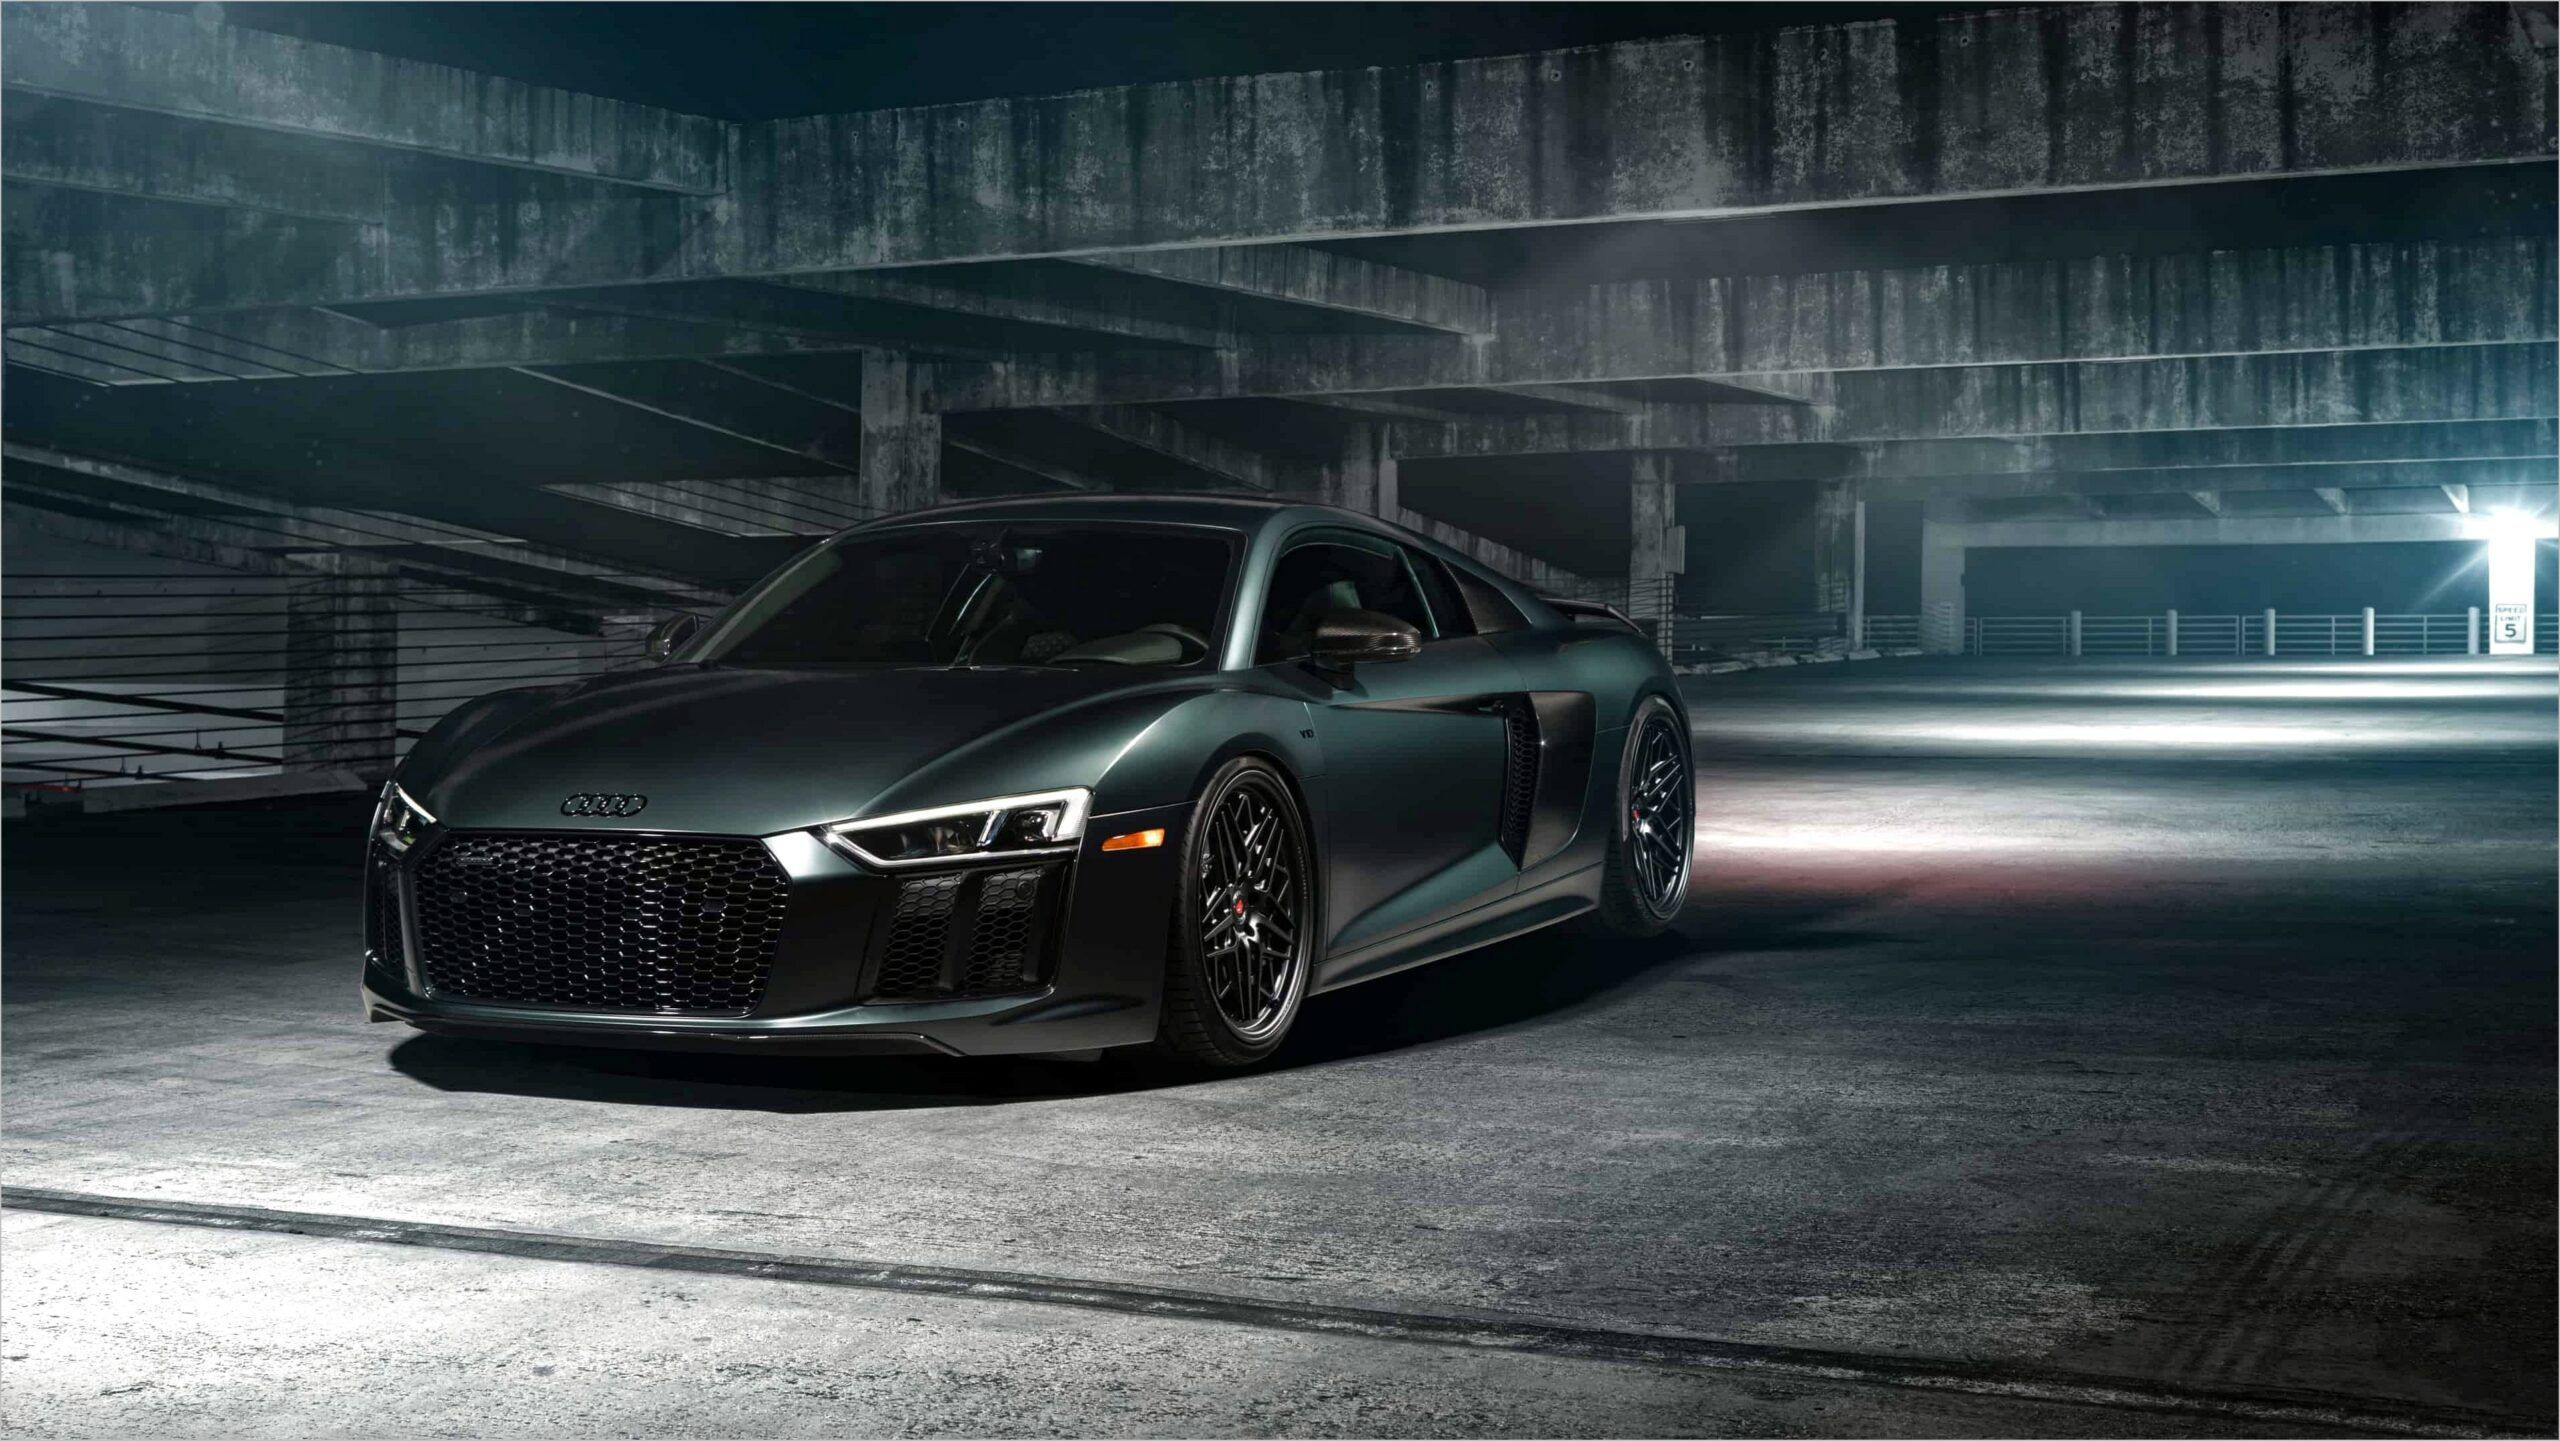 Audi R8 V10 Plus Wallpapers Wallpaper Cave